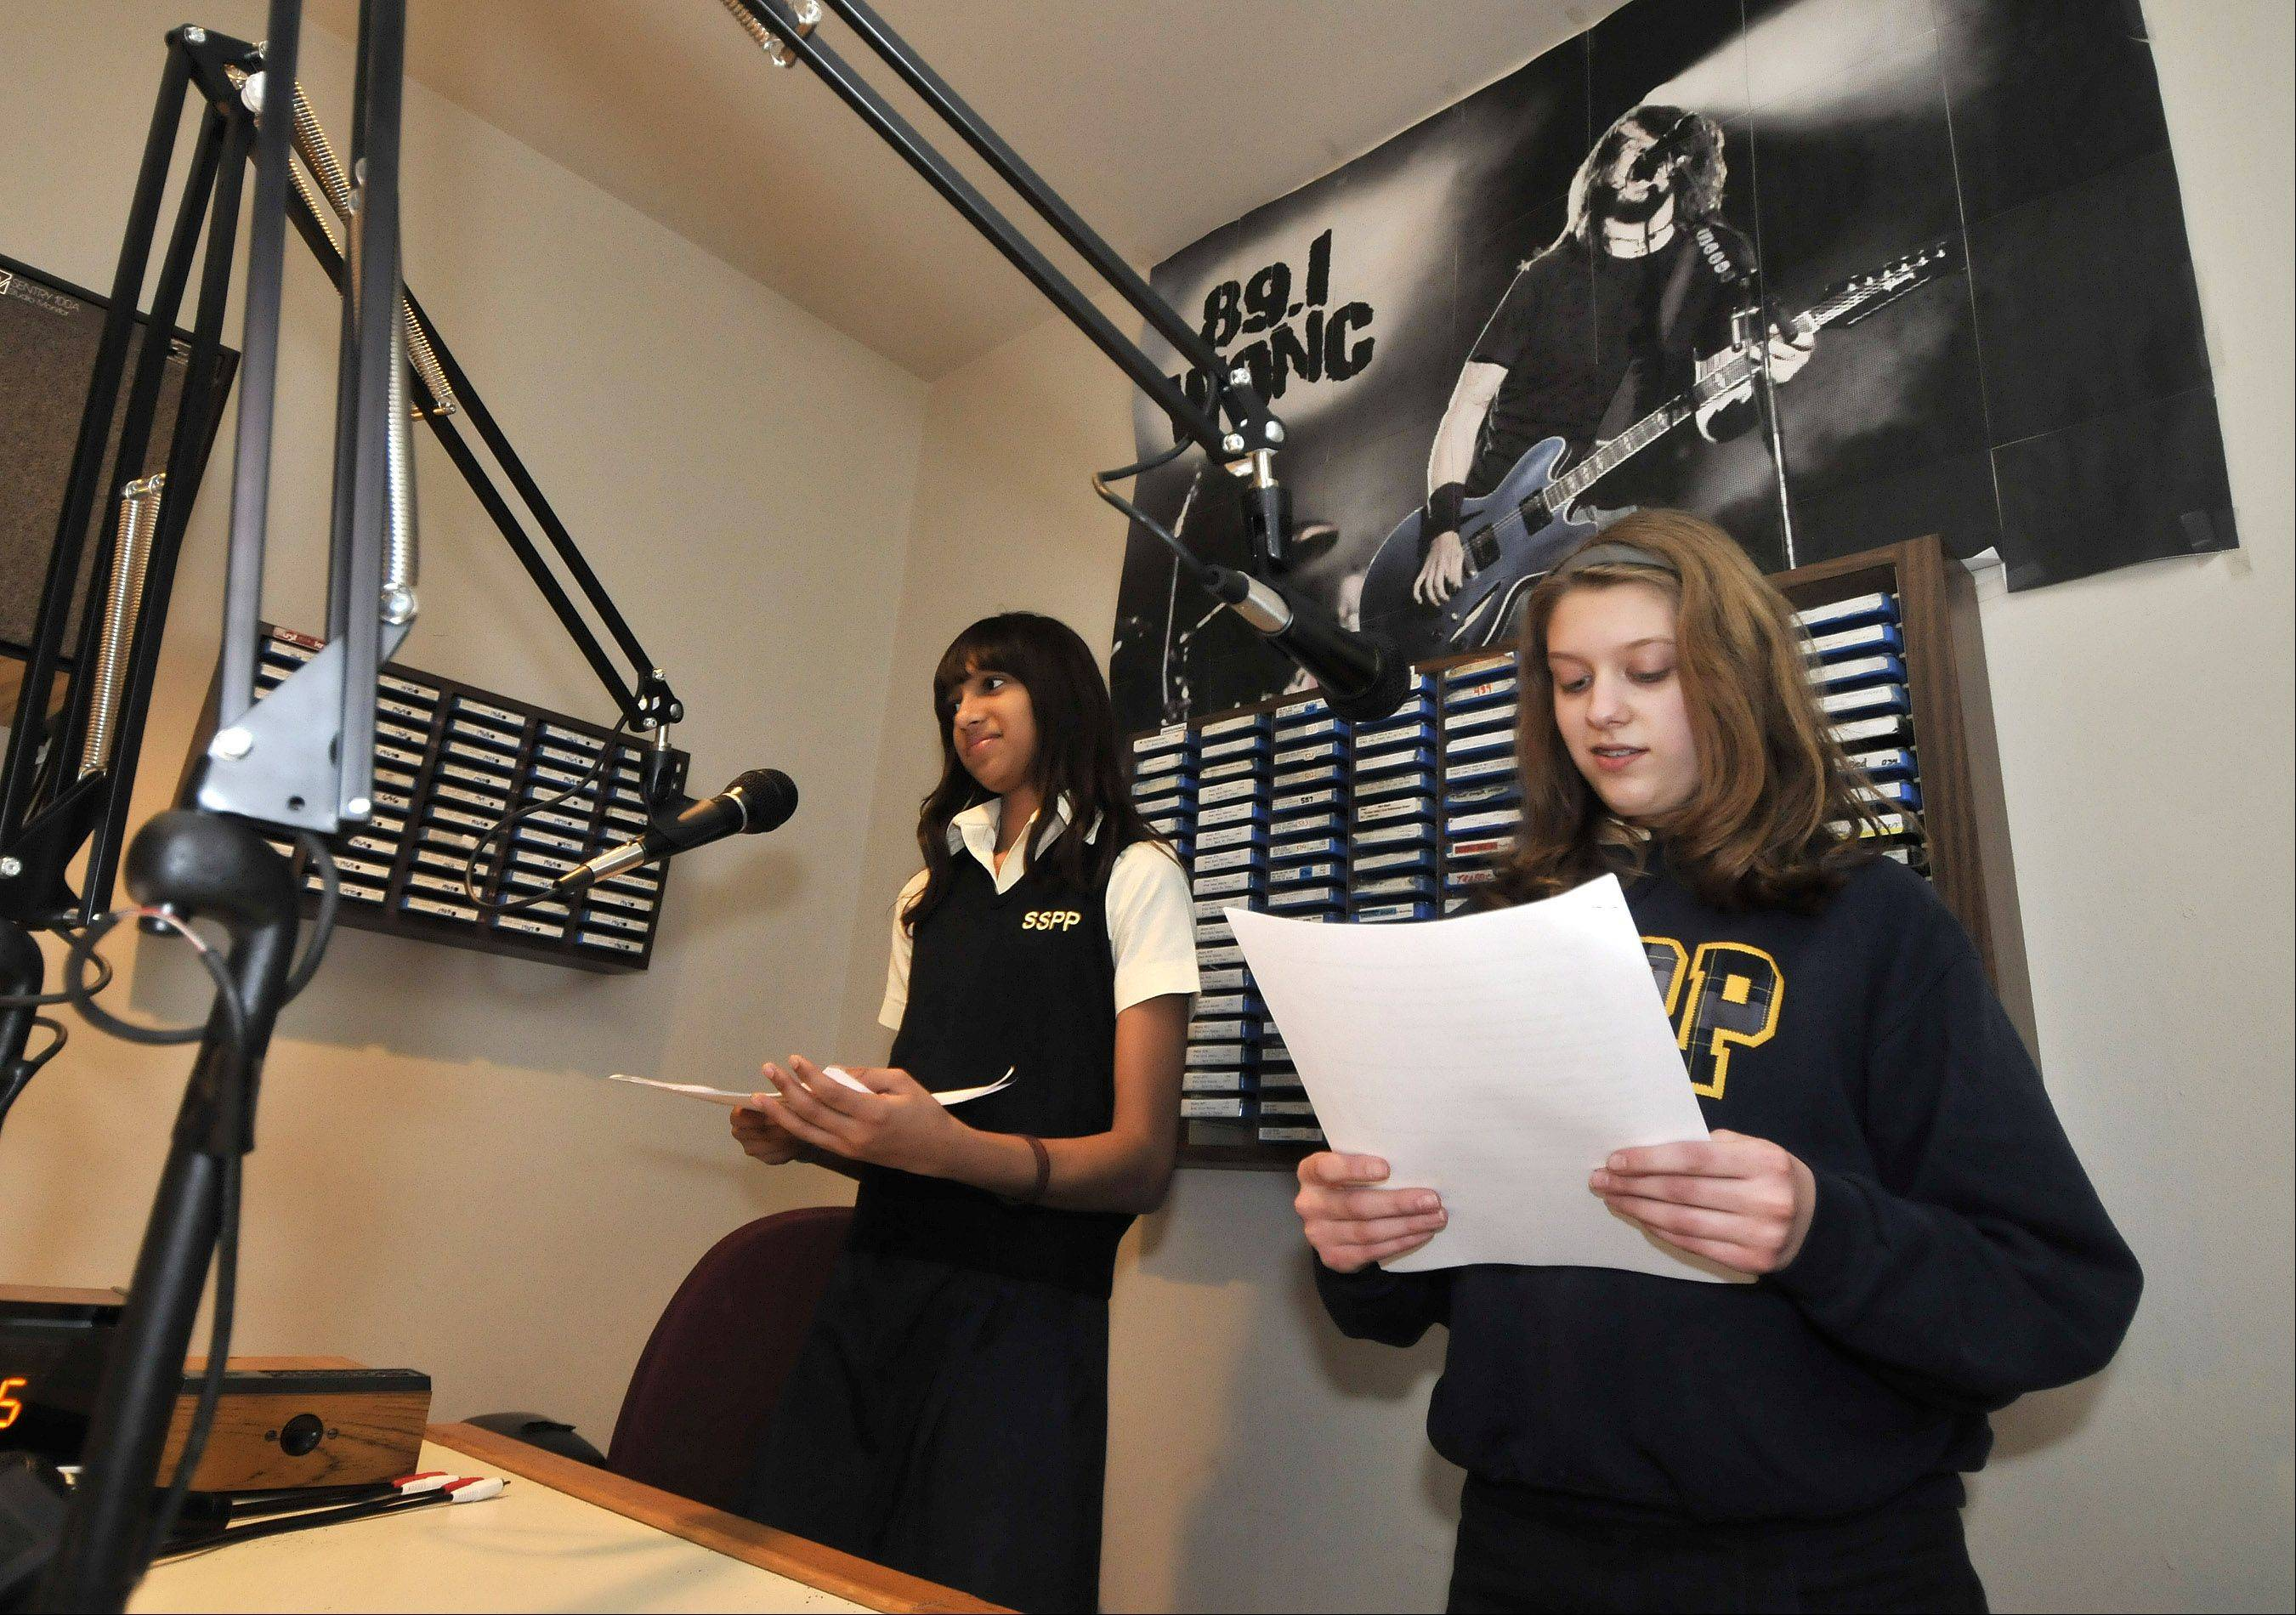 Ss. Peter & Paul School seventh-graders Shirley Armstrong and Lara Skarbek read their lines at WONC studios in Naperville.